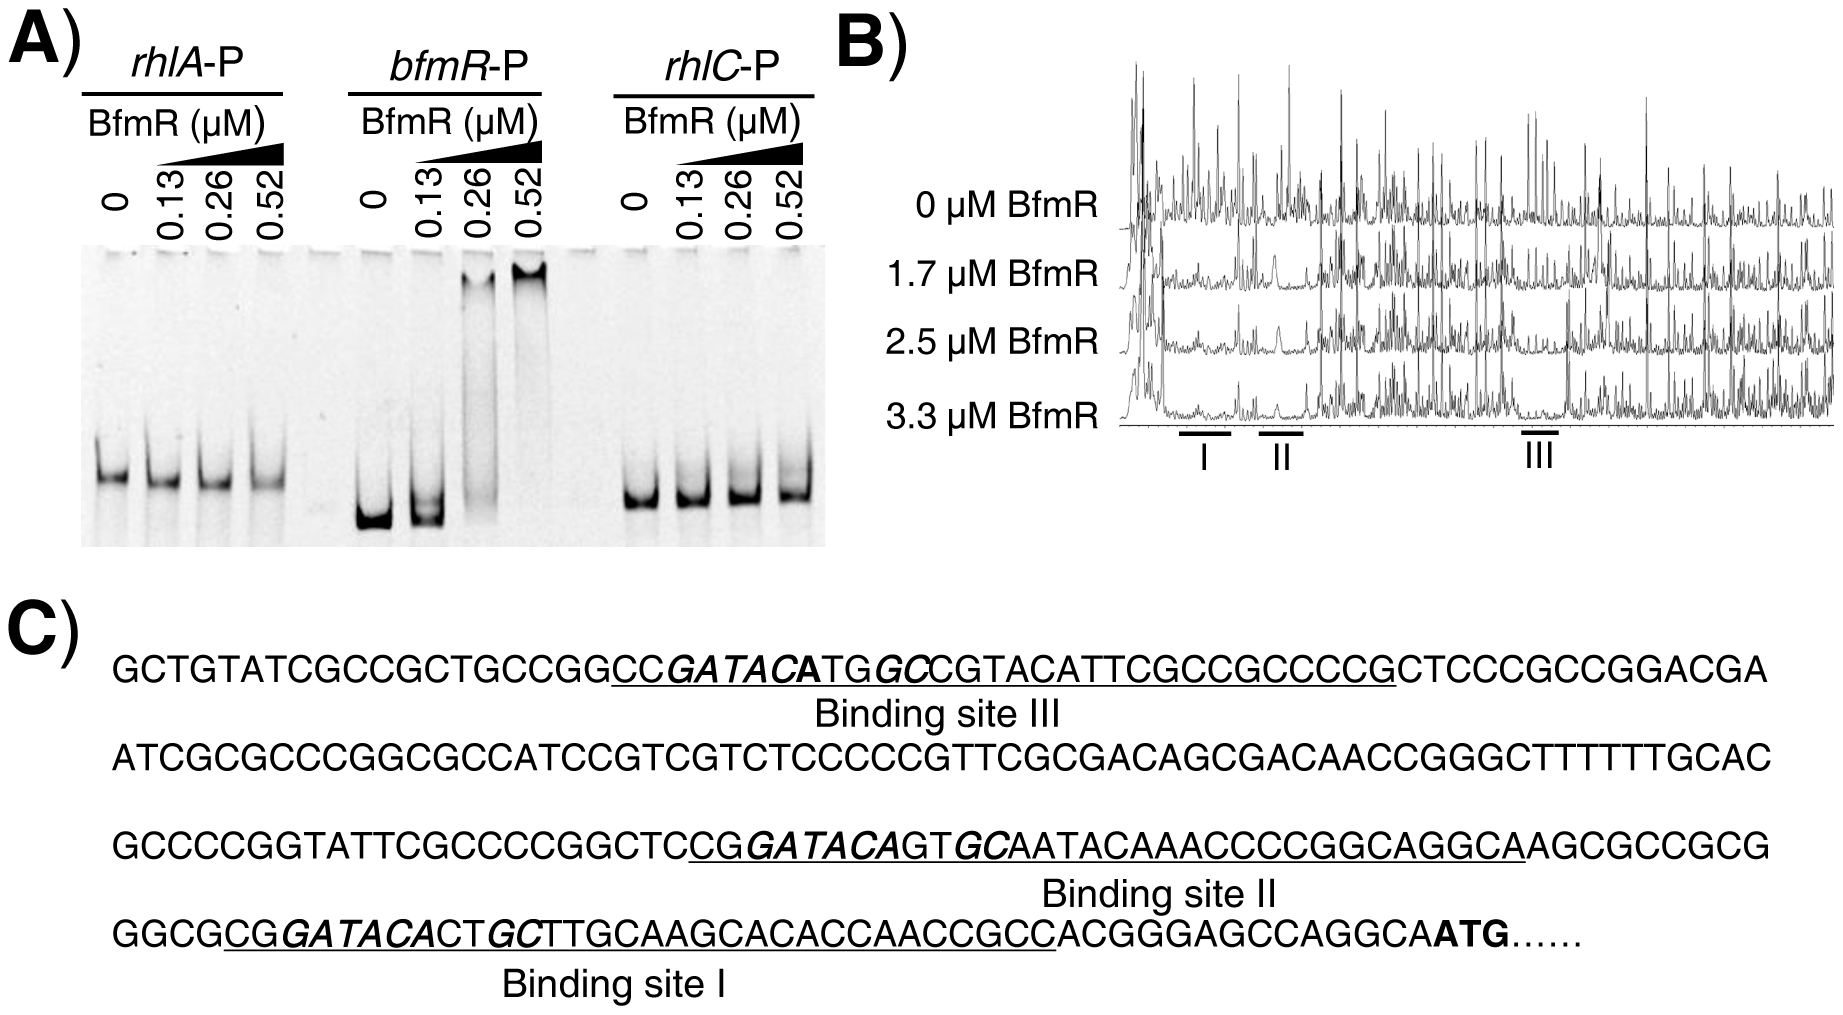 Direct binding of BfmR to its own promoter.